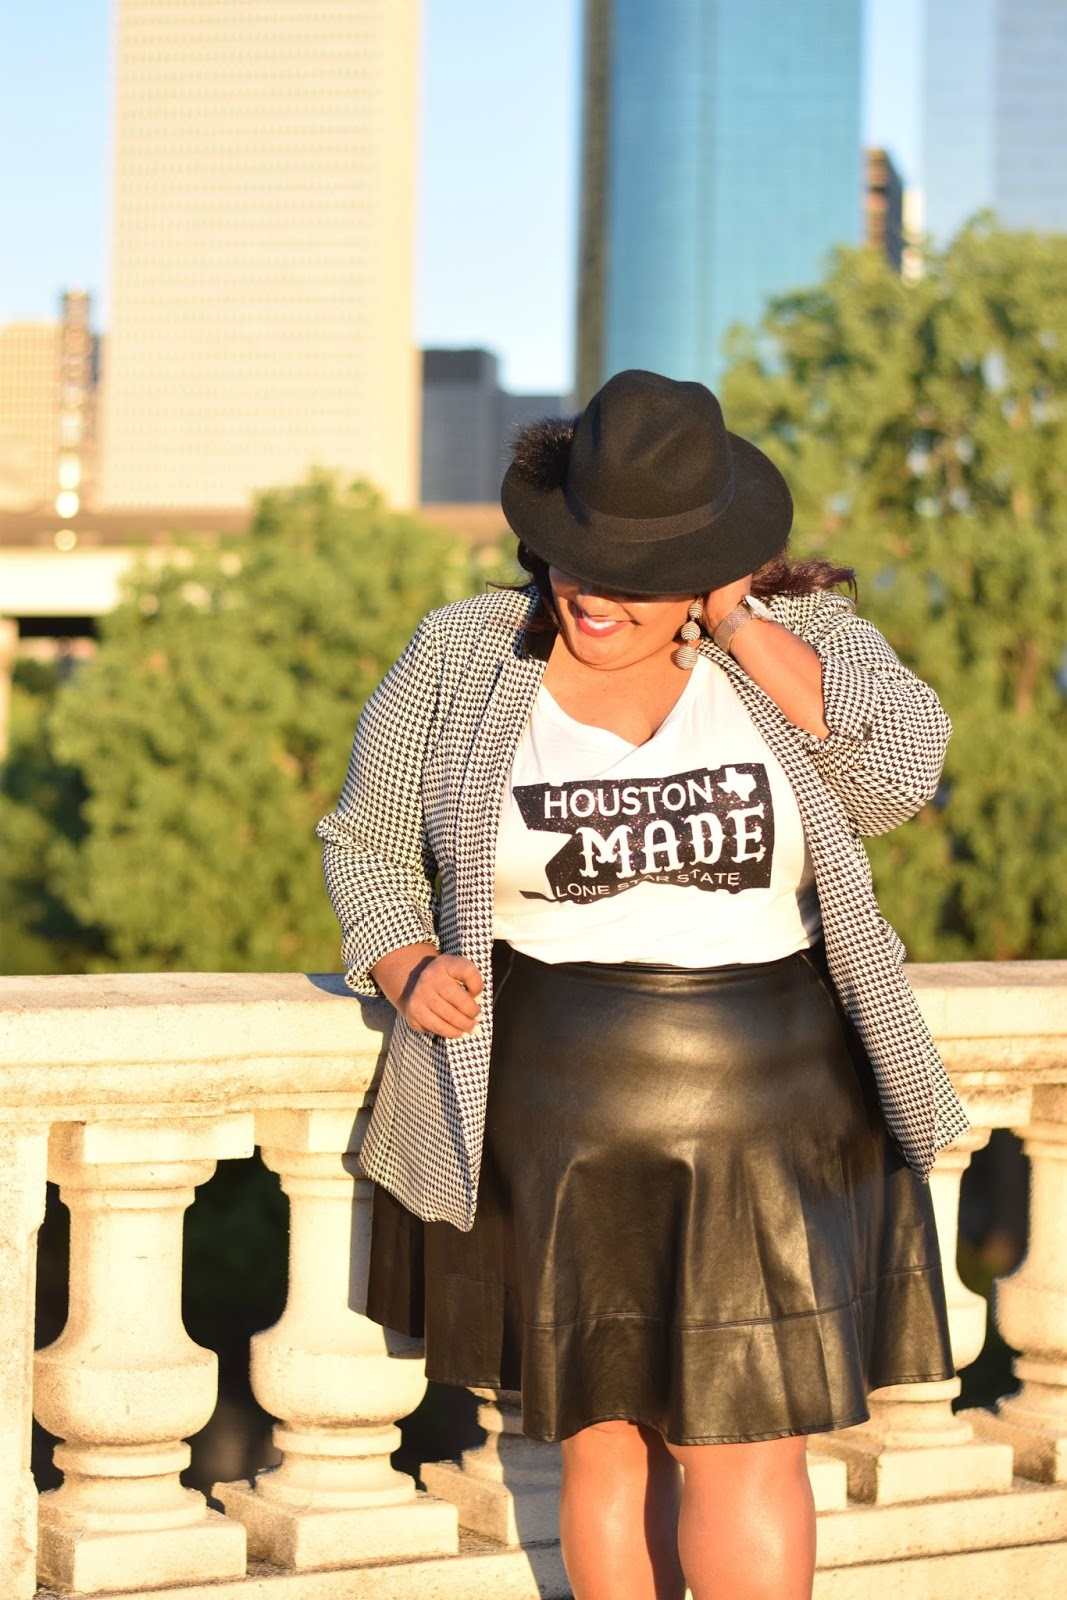 eb9921f5 ... Houston Made Graphic Tee with the Bryant Blazer from Lane Bryant and  black faux leather skirt. Keeping it simple, I completed the look with a  two-piece ...